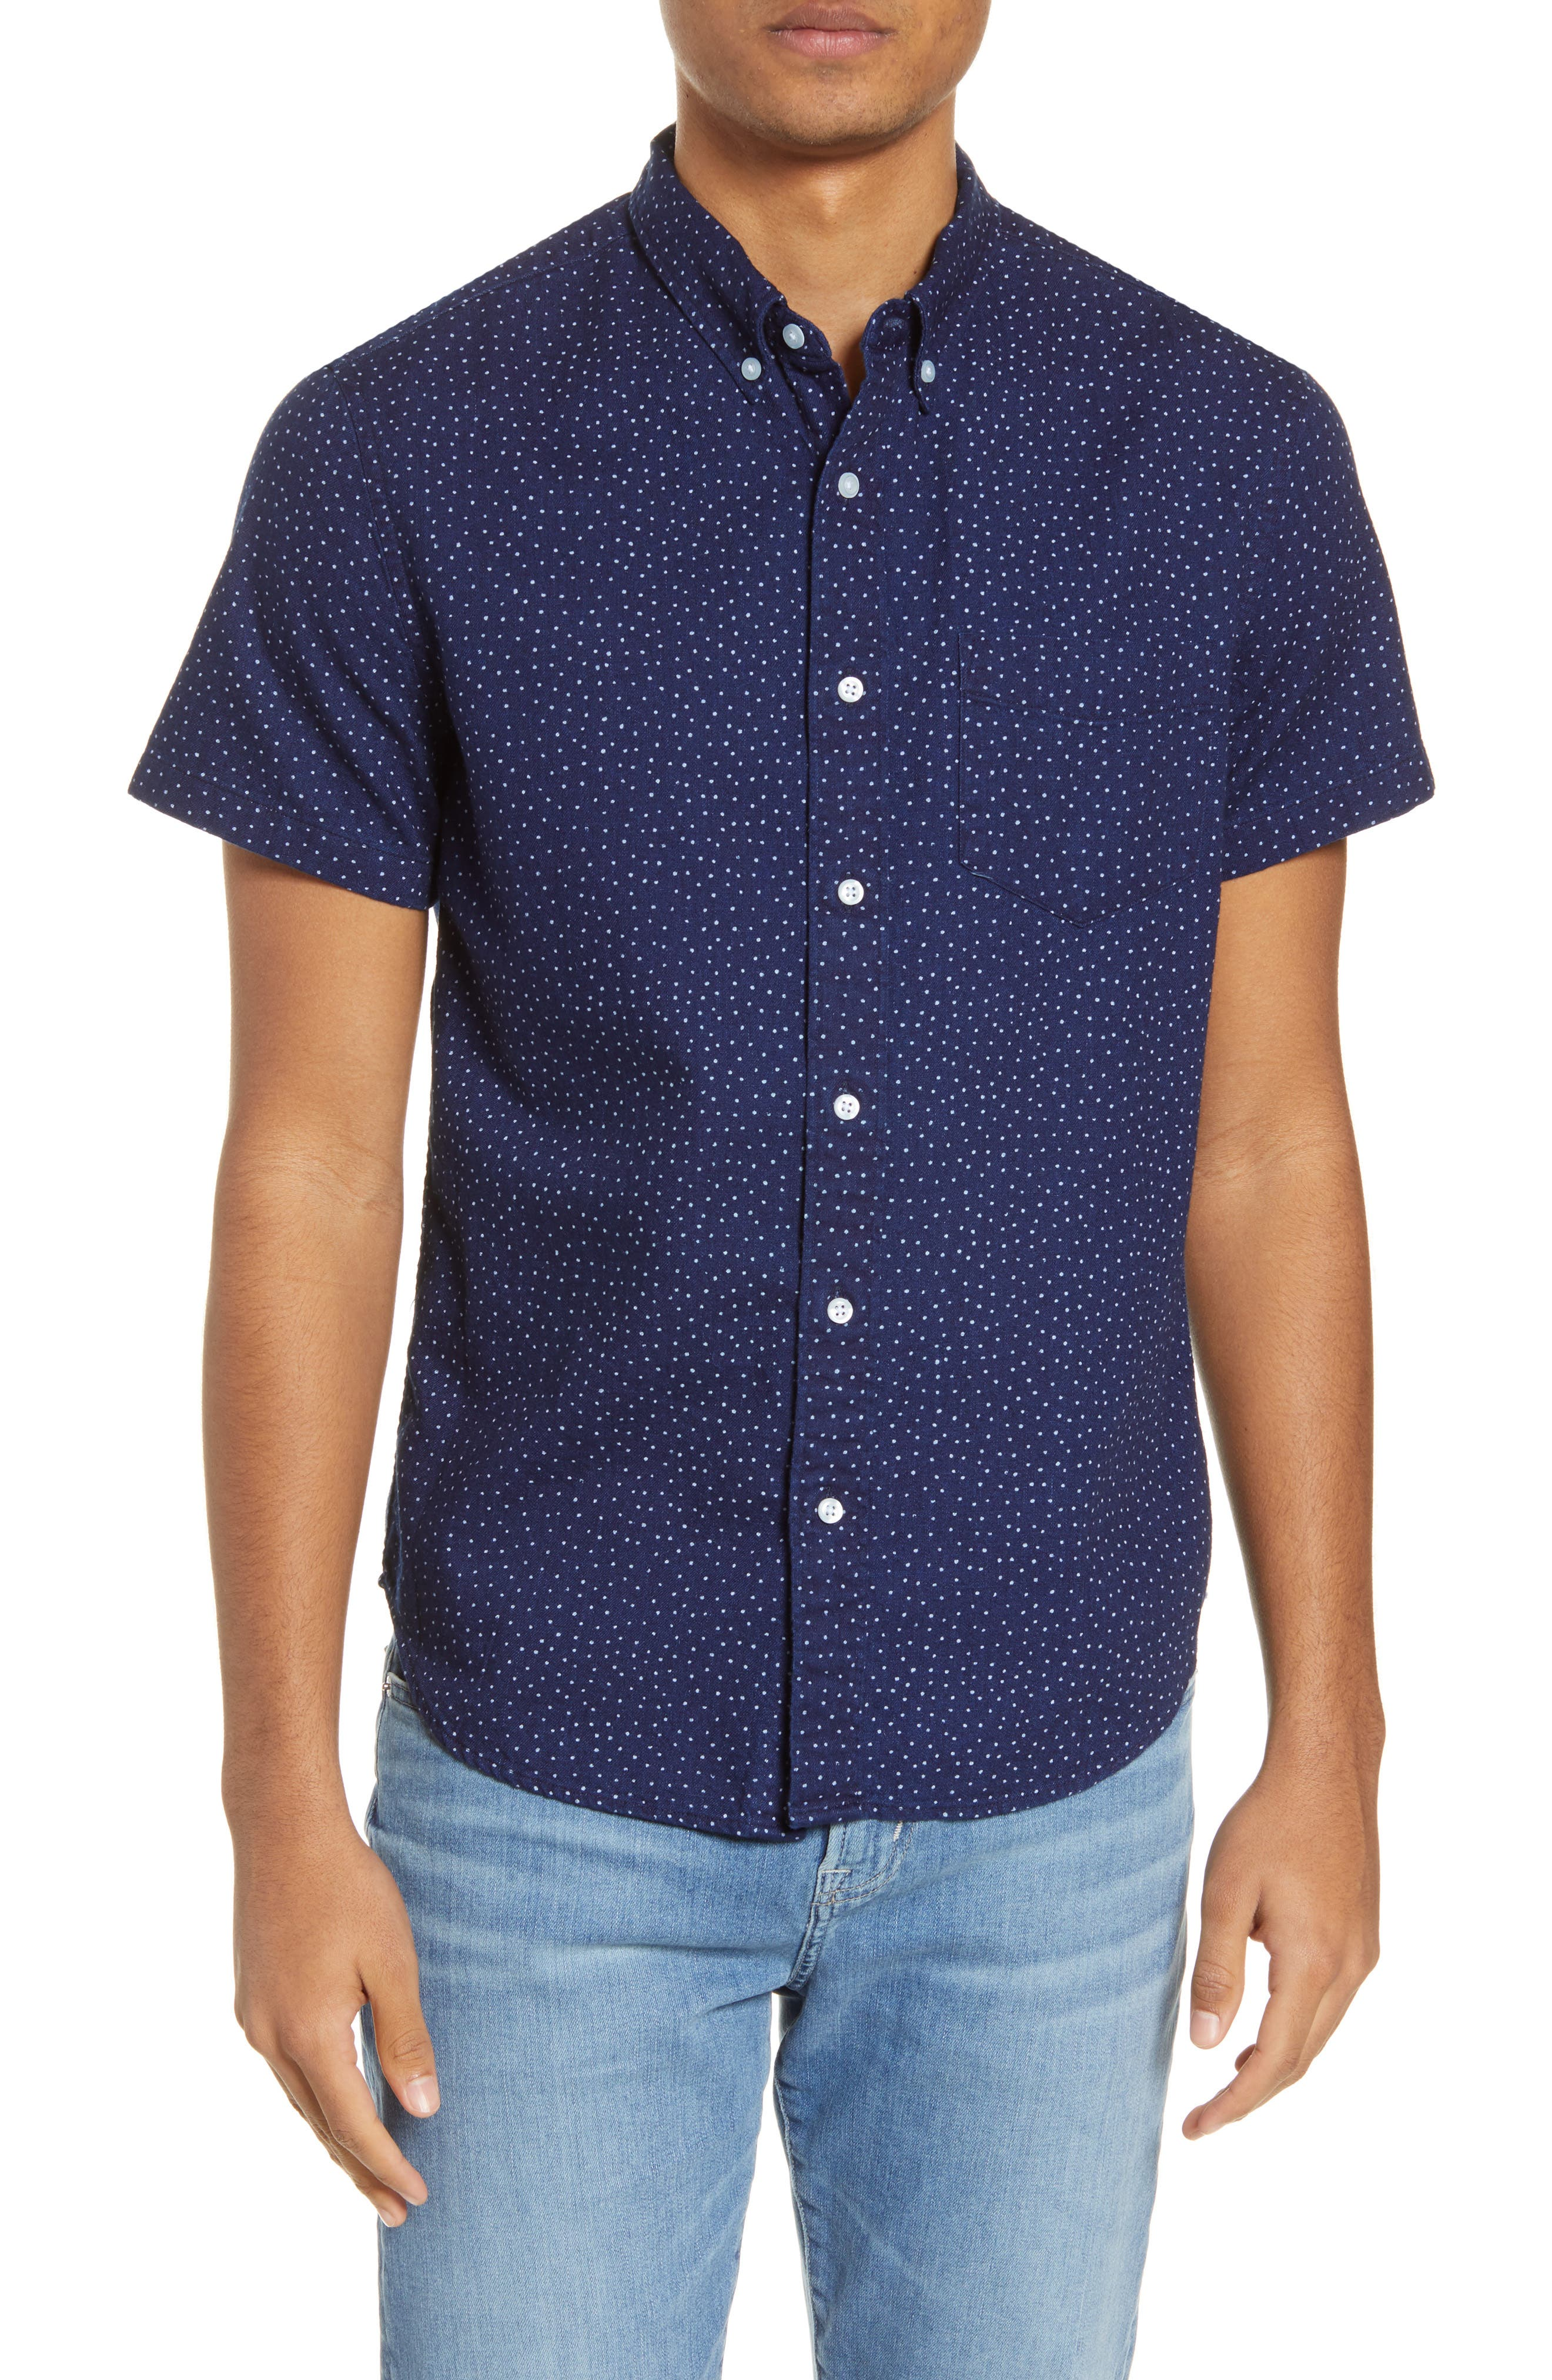 Made to be worn untucked, this short-sleeve shirt looks cooler-and feels even softer-the more you wear it. Plus, it has a button-down collar for a pulled-together look. Style Name: Madewell Indigo Dots Short Sleeve Button-Down Shirt. Style Number: 6046983. Available in stores.